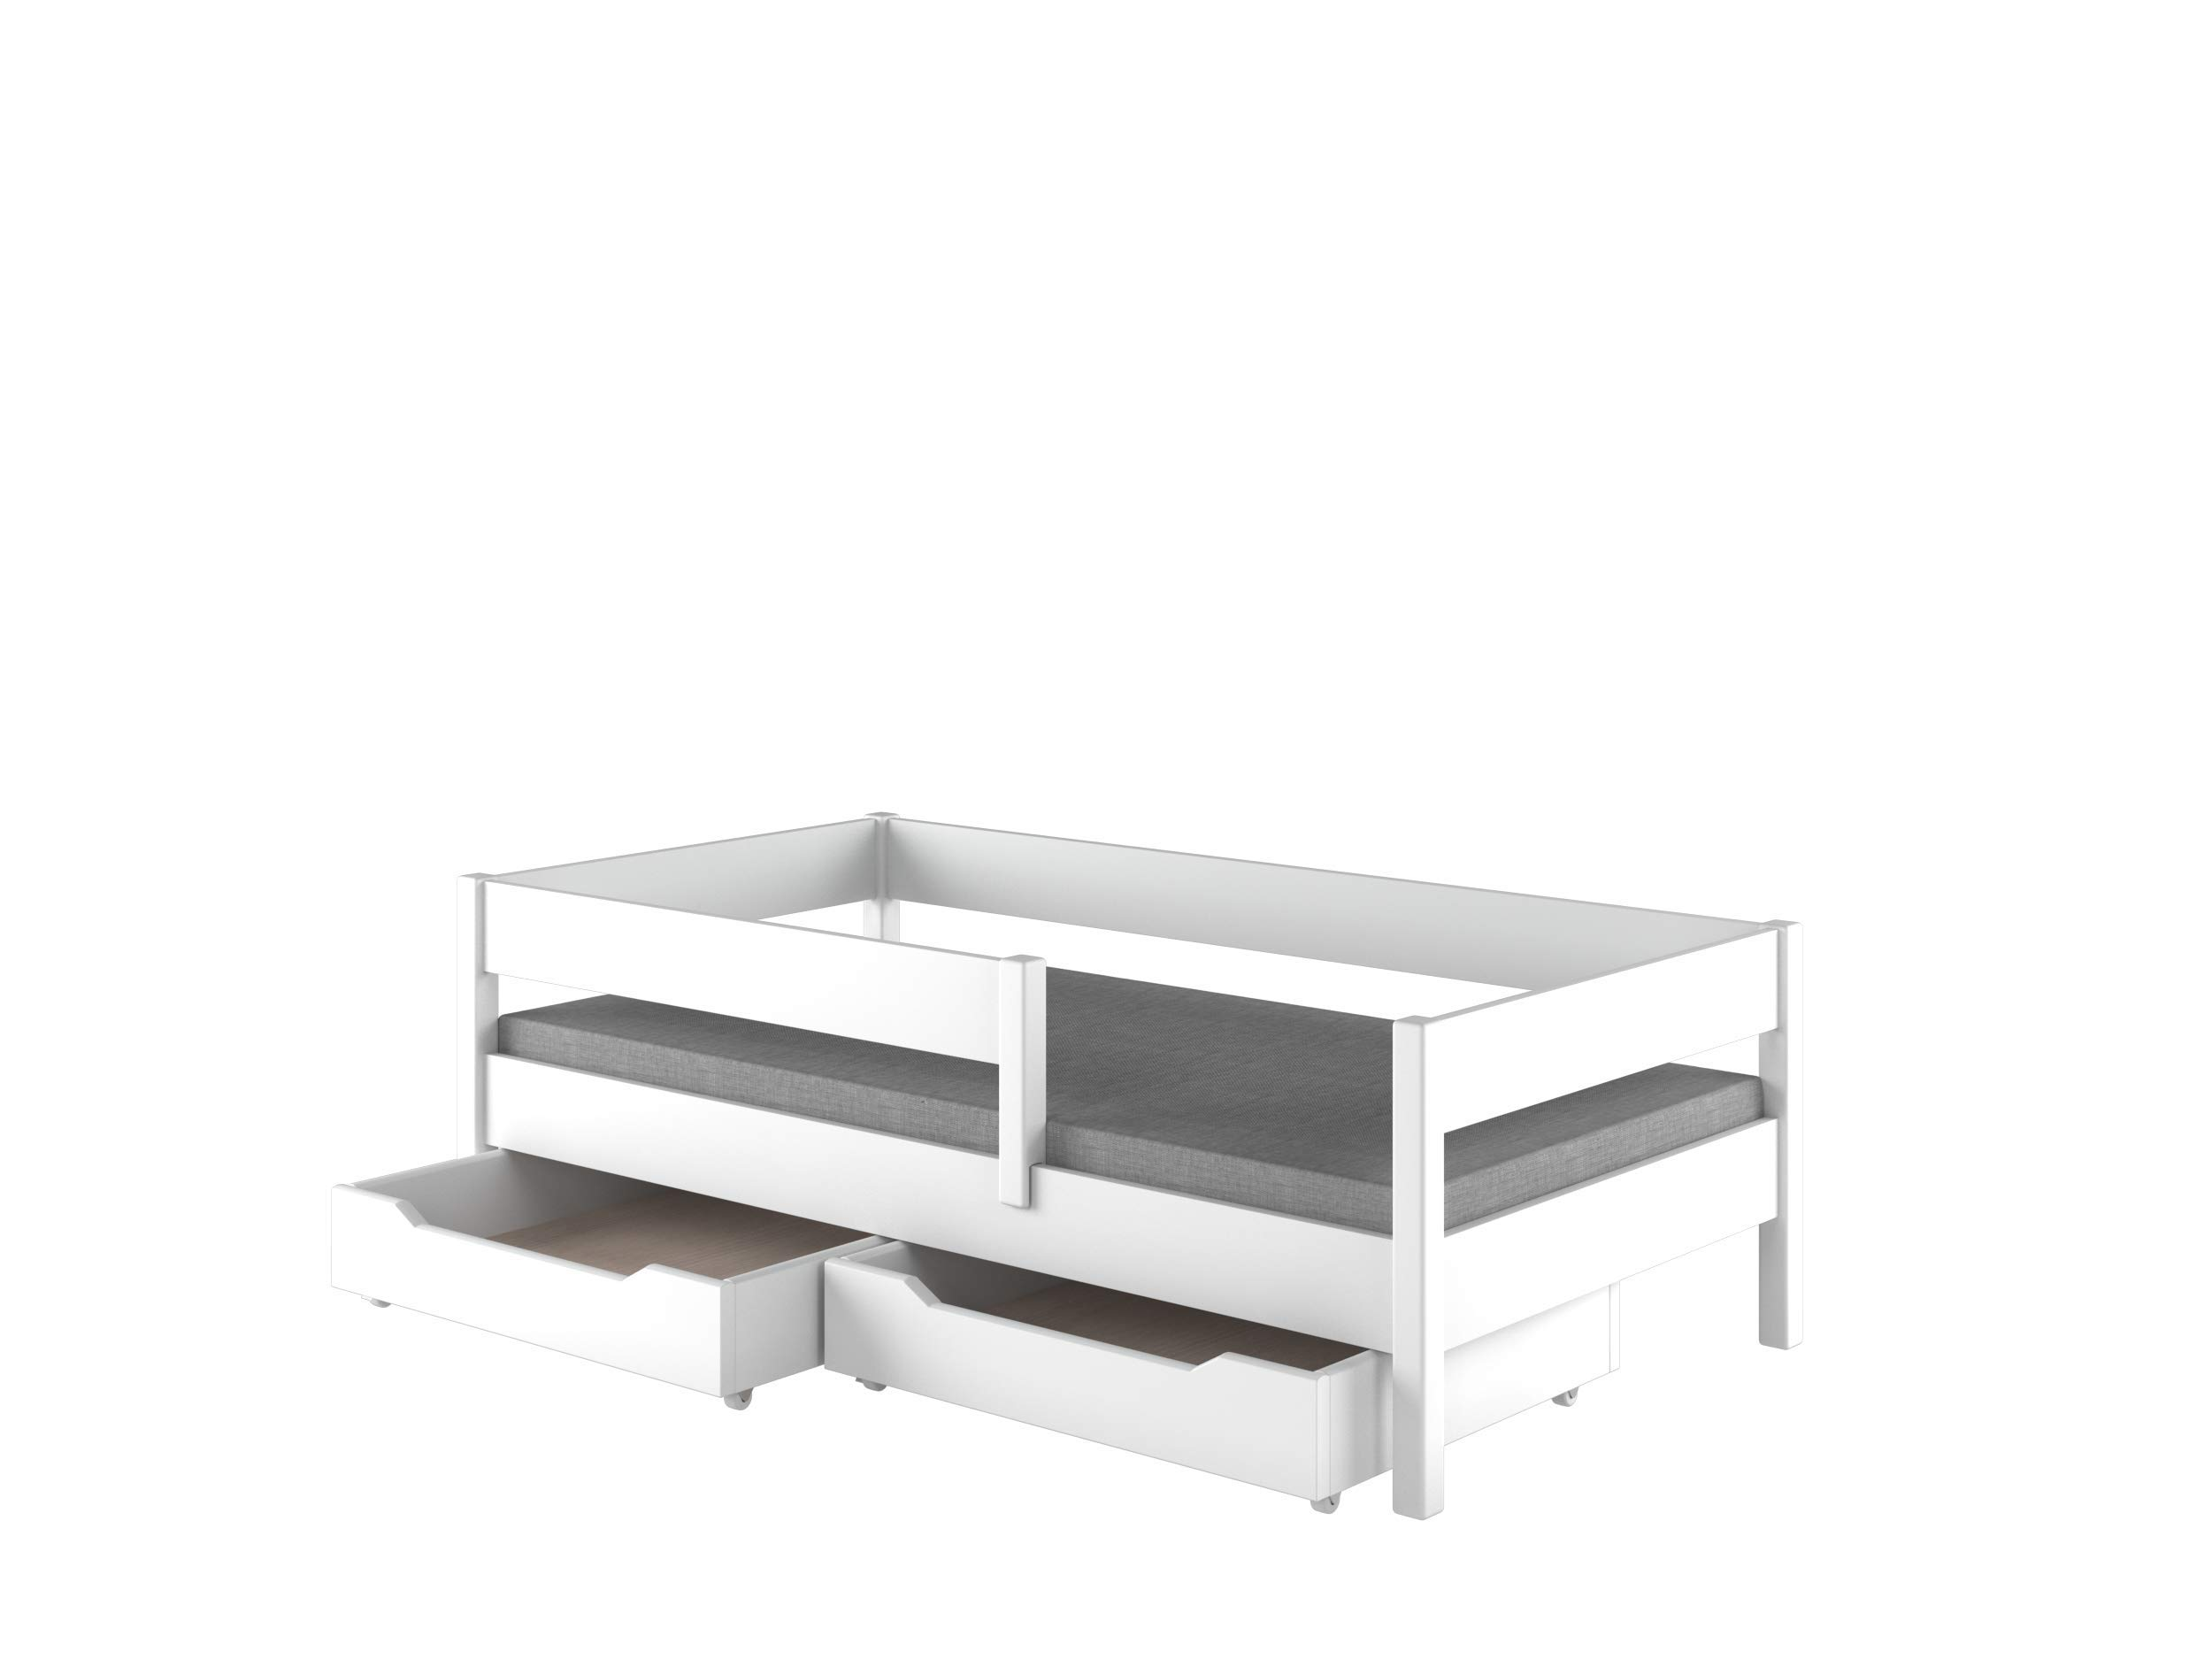 Single Beds For Kids Children Toddler Junior with drawers No Mattress Included (140x70, White) Children's Beds Home Bed with barriers - internal dimensions 140x70, 160x80, 180x80, 180x90, 200x90 (External dimensions: 147x77, 167x87, 187x87, 187x97, 207x97) Bed frame with load capacity of 150 kg, Fittings + installation instructions Universal bed entrance - right or left side, front barrier can be removed at later stage. 1